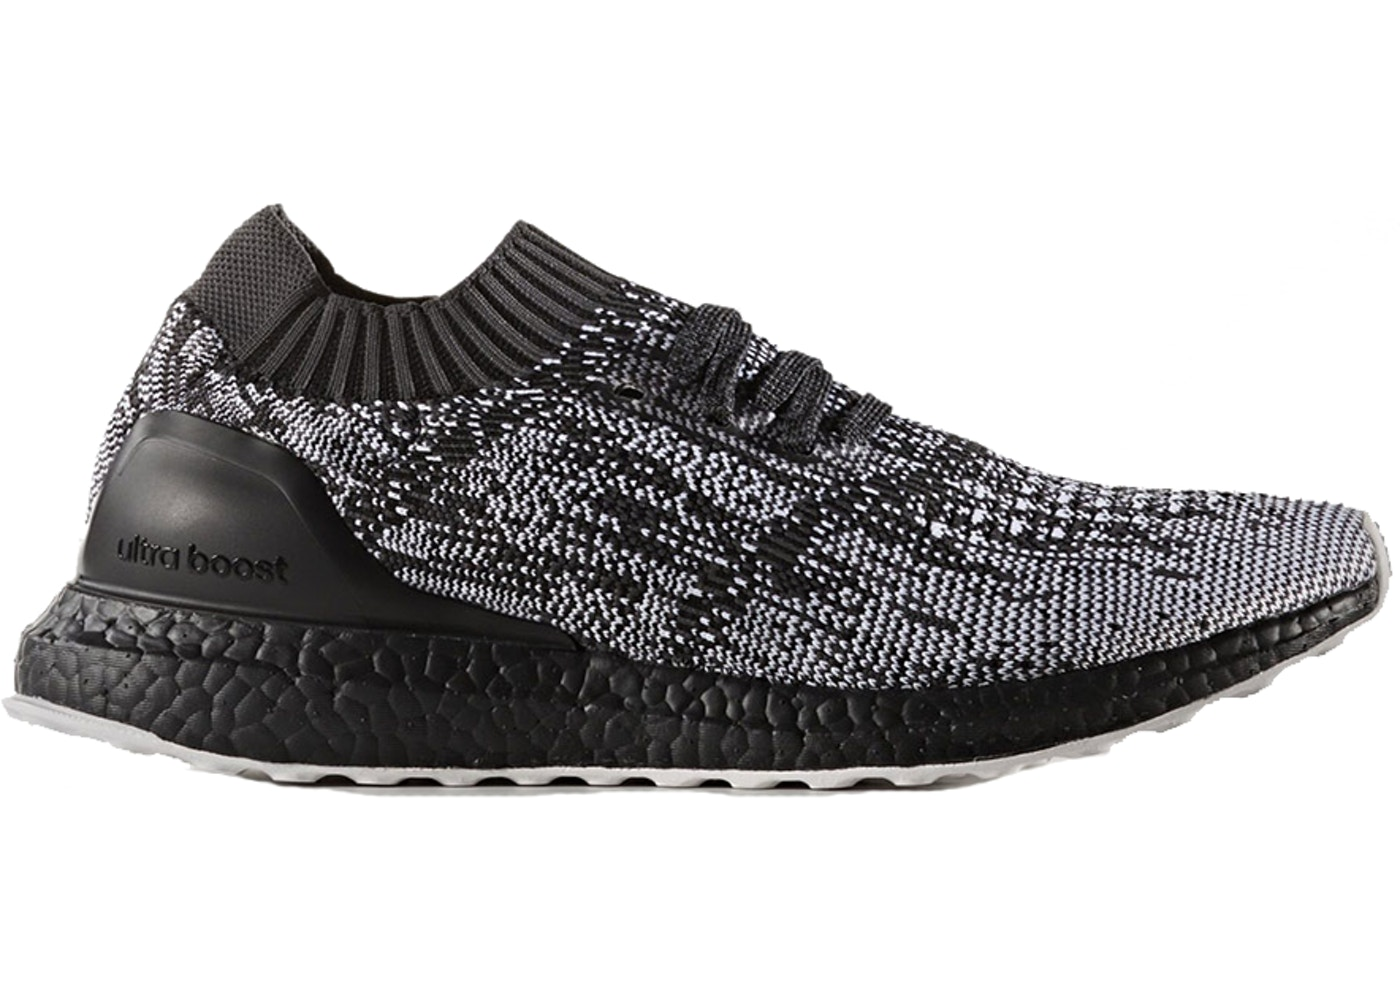 e8fe9d3e44a52 adidas Ultra Boost Uncaged Black White - S80698